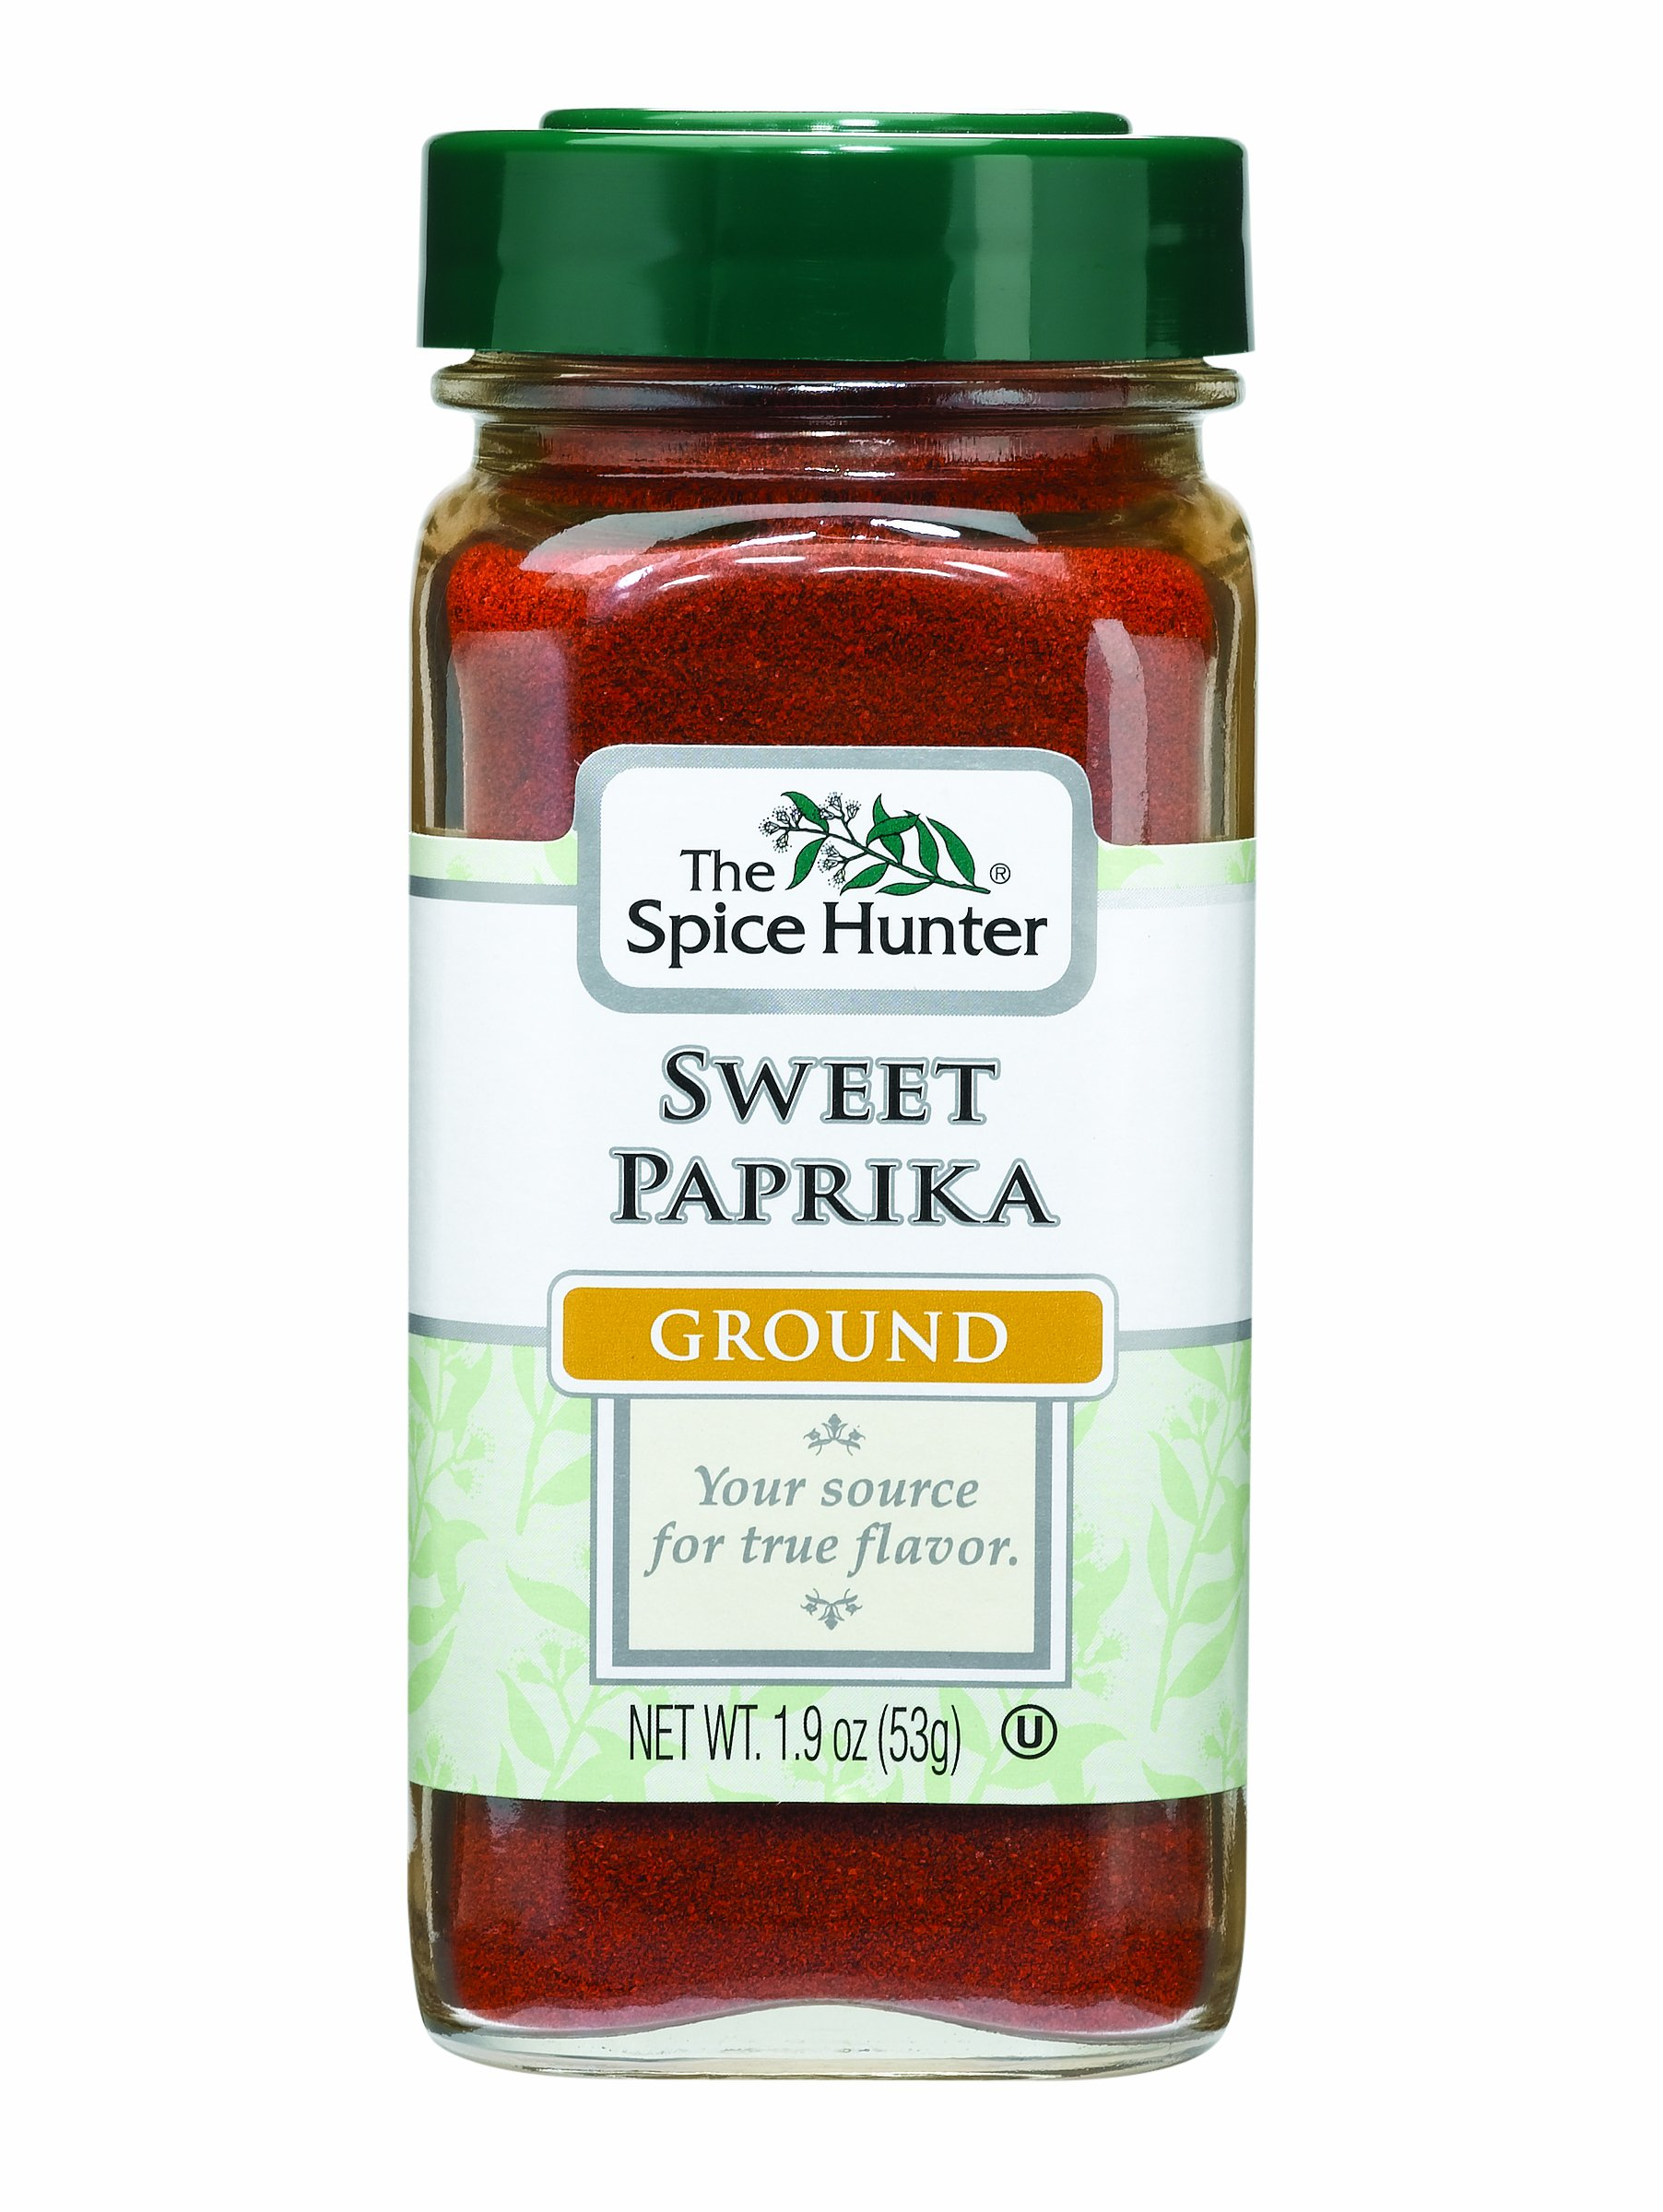 The Spice Hunter Paprika, Sweet, Ground, 1.9-Ounce Jars (Pack of 6)